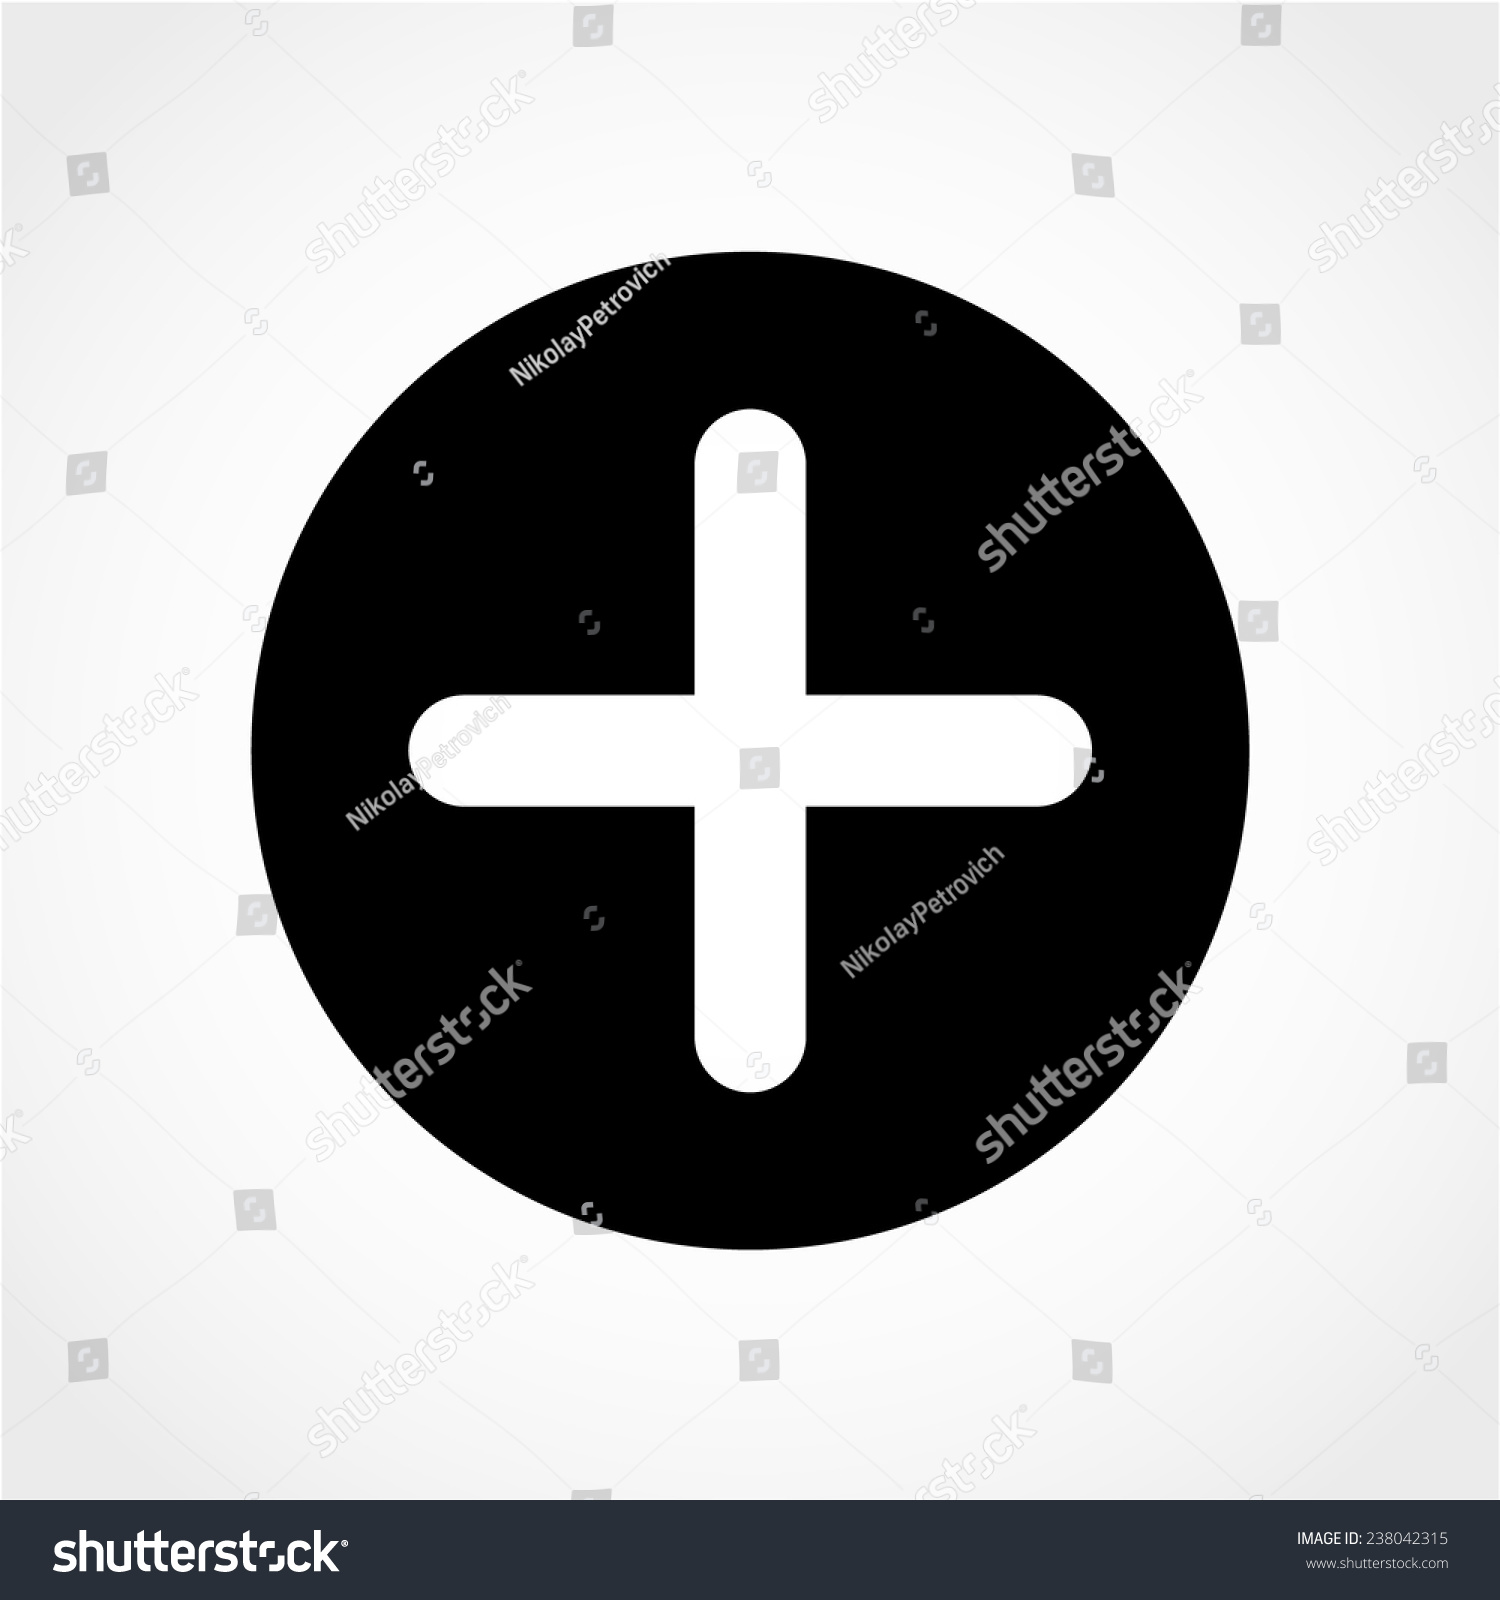 Positive symbol zoom in plus sign stock vector 238042315 positive symbol zoom in plus sign icon isolated on white background biocorpaavc Choice Image